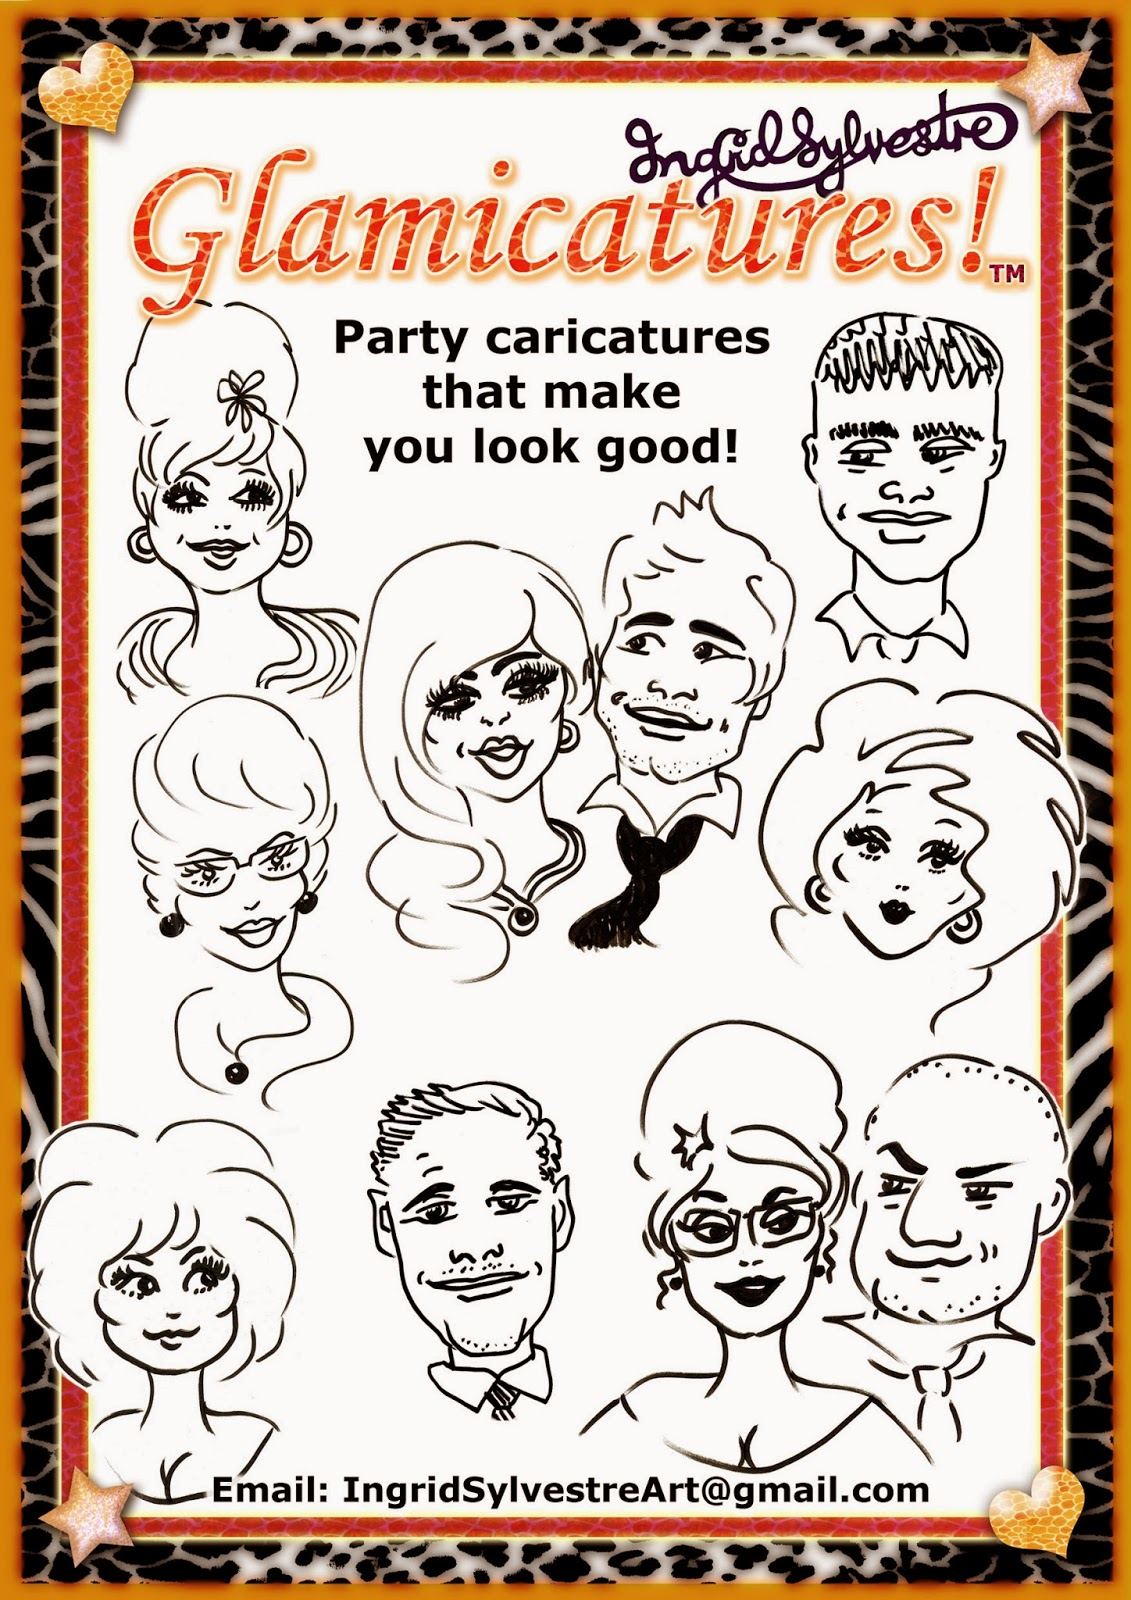 Ingrid Sylvestre Glamicatures TM - Party caricatures that make you look good! Wedding entertainment ideas North East Weddings Gay Weddings entertainment ideas Party Entertainment ideas Corporate Events Entertainment ideas North East UK Newcastle upon Tyne Durham Sunderland Teesside Northumberland Yorkshire  ideas